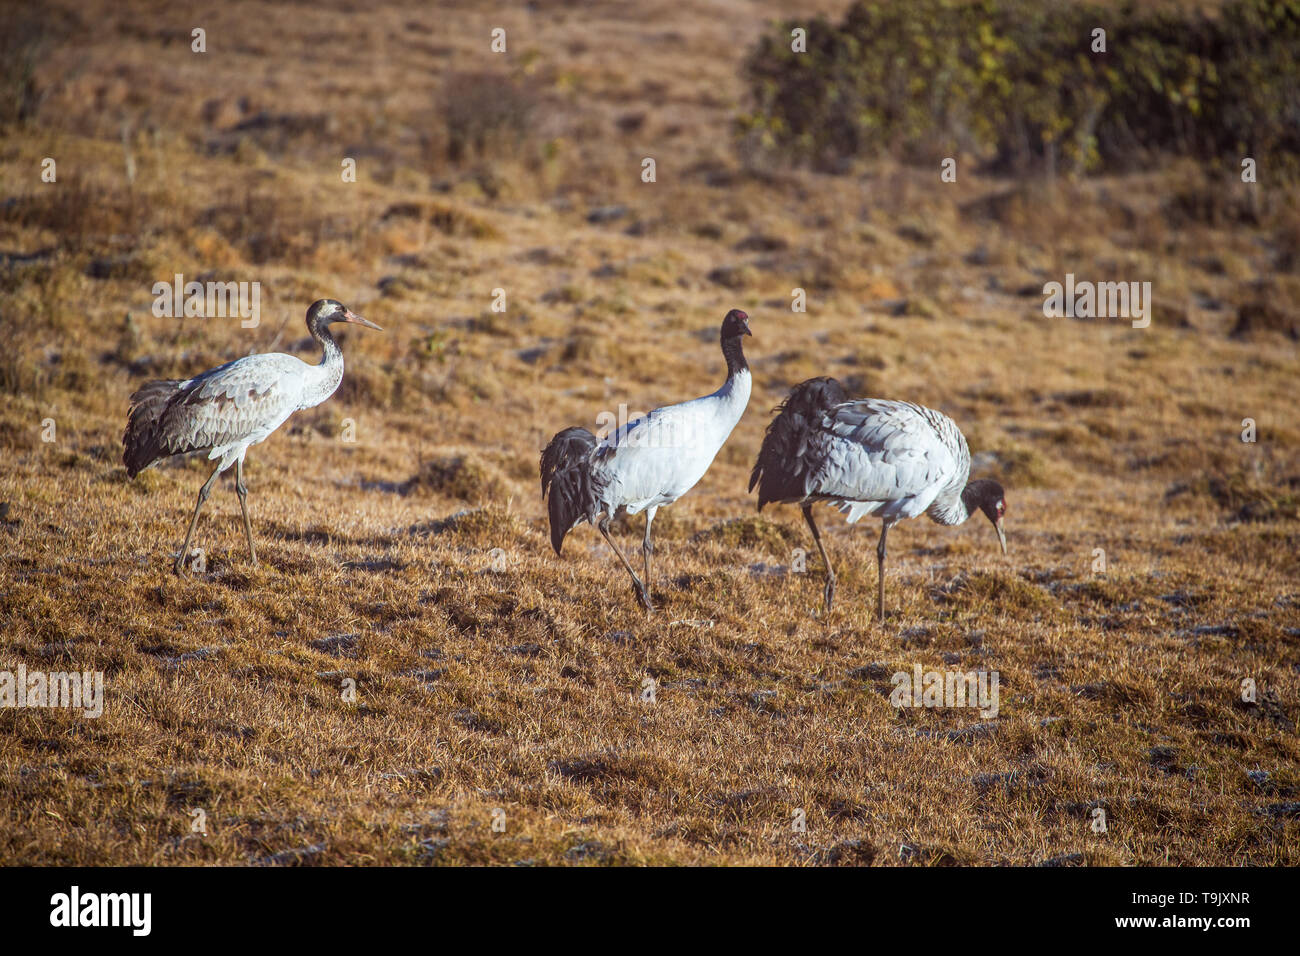 Group of black-necked crane in Phobjikha valley during winter time - Stock Image